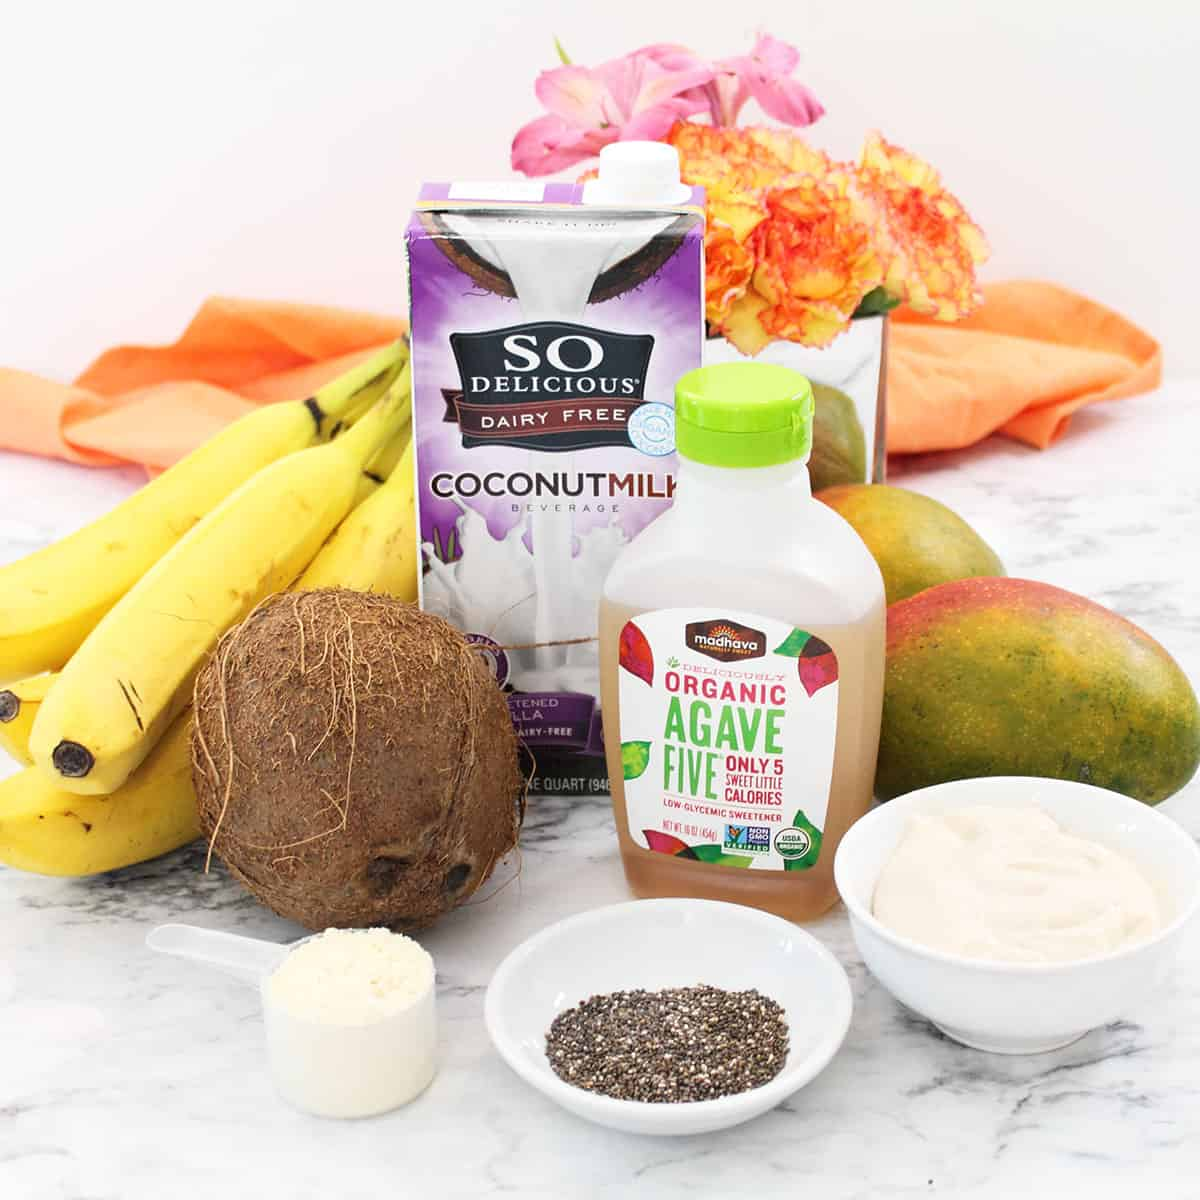 Smoothie ingredients laid on white table.